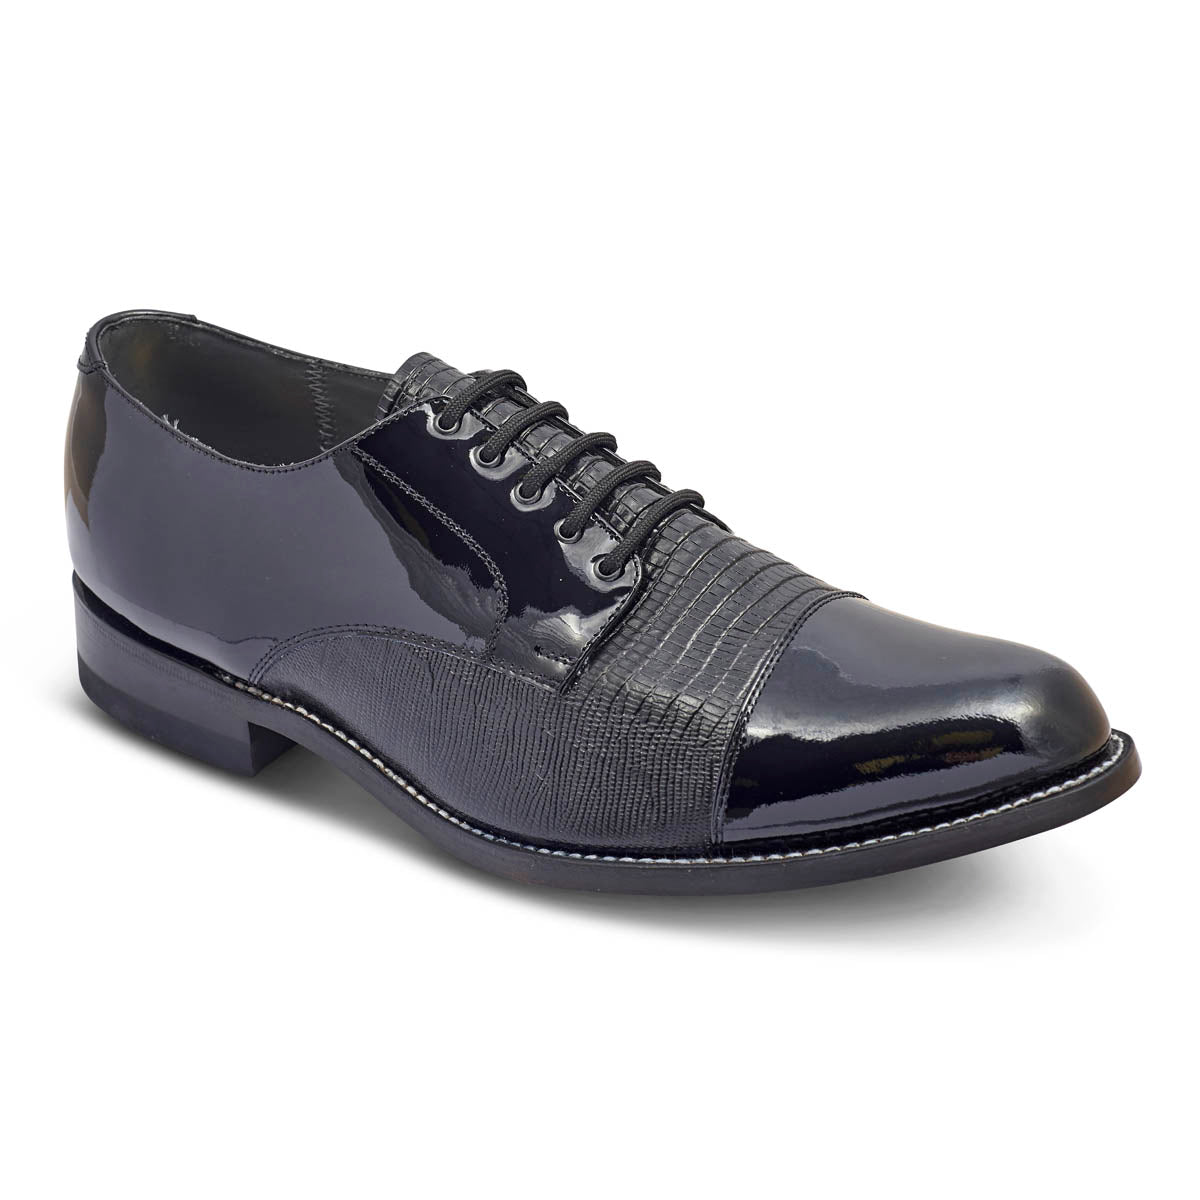 STACY PENNER - Black Cap Toe (C1609) NEW STYLE